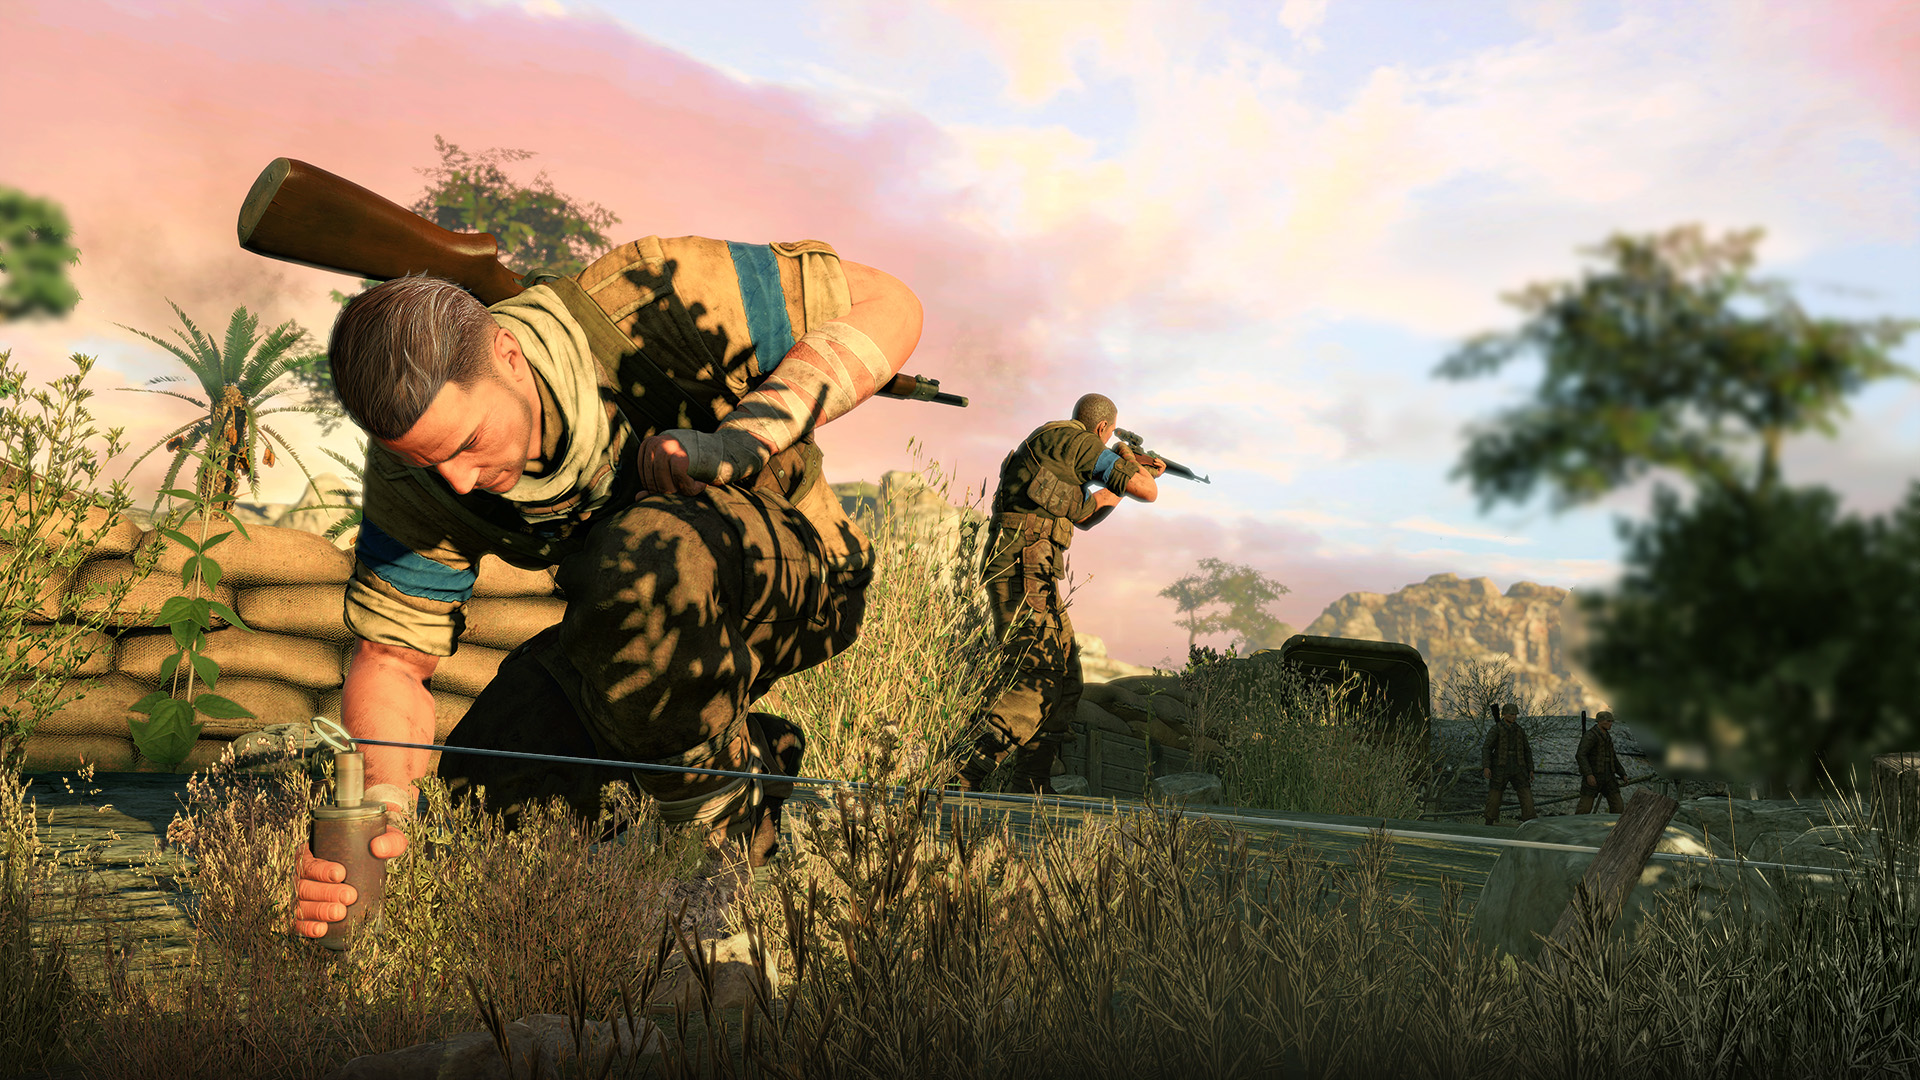 Sniper Elite Wallpaper 2706 1920 x 1080   WallpaperLayercom 1920x1080